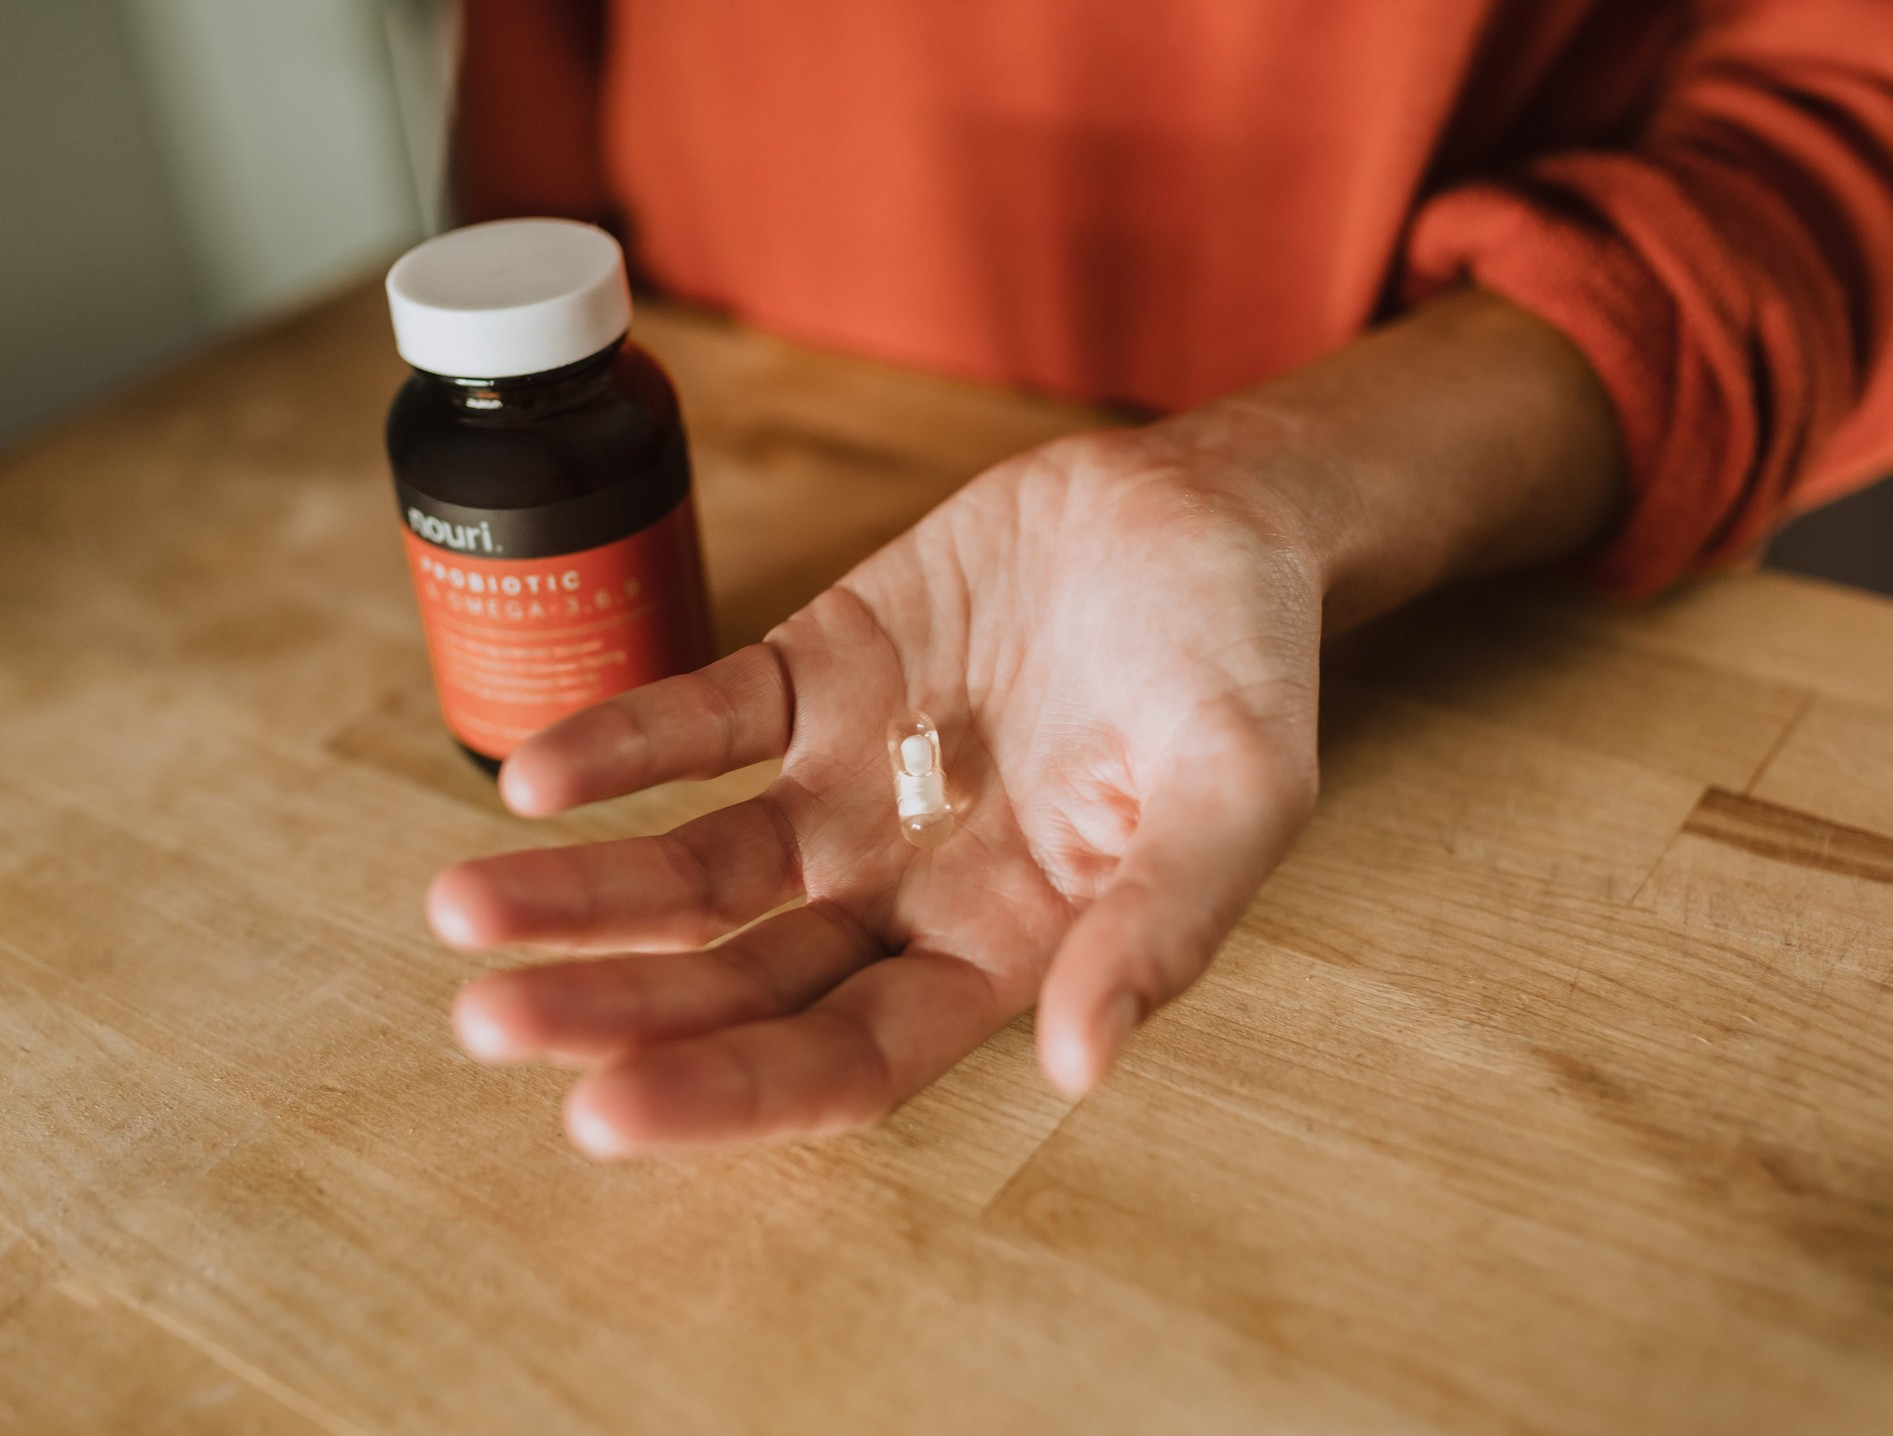 person holding a supplement next to a jar of supplements.